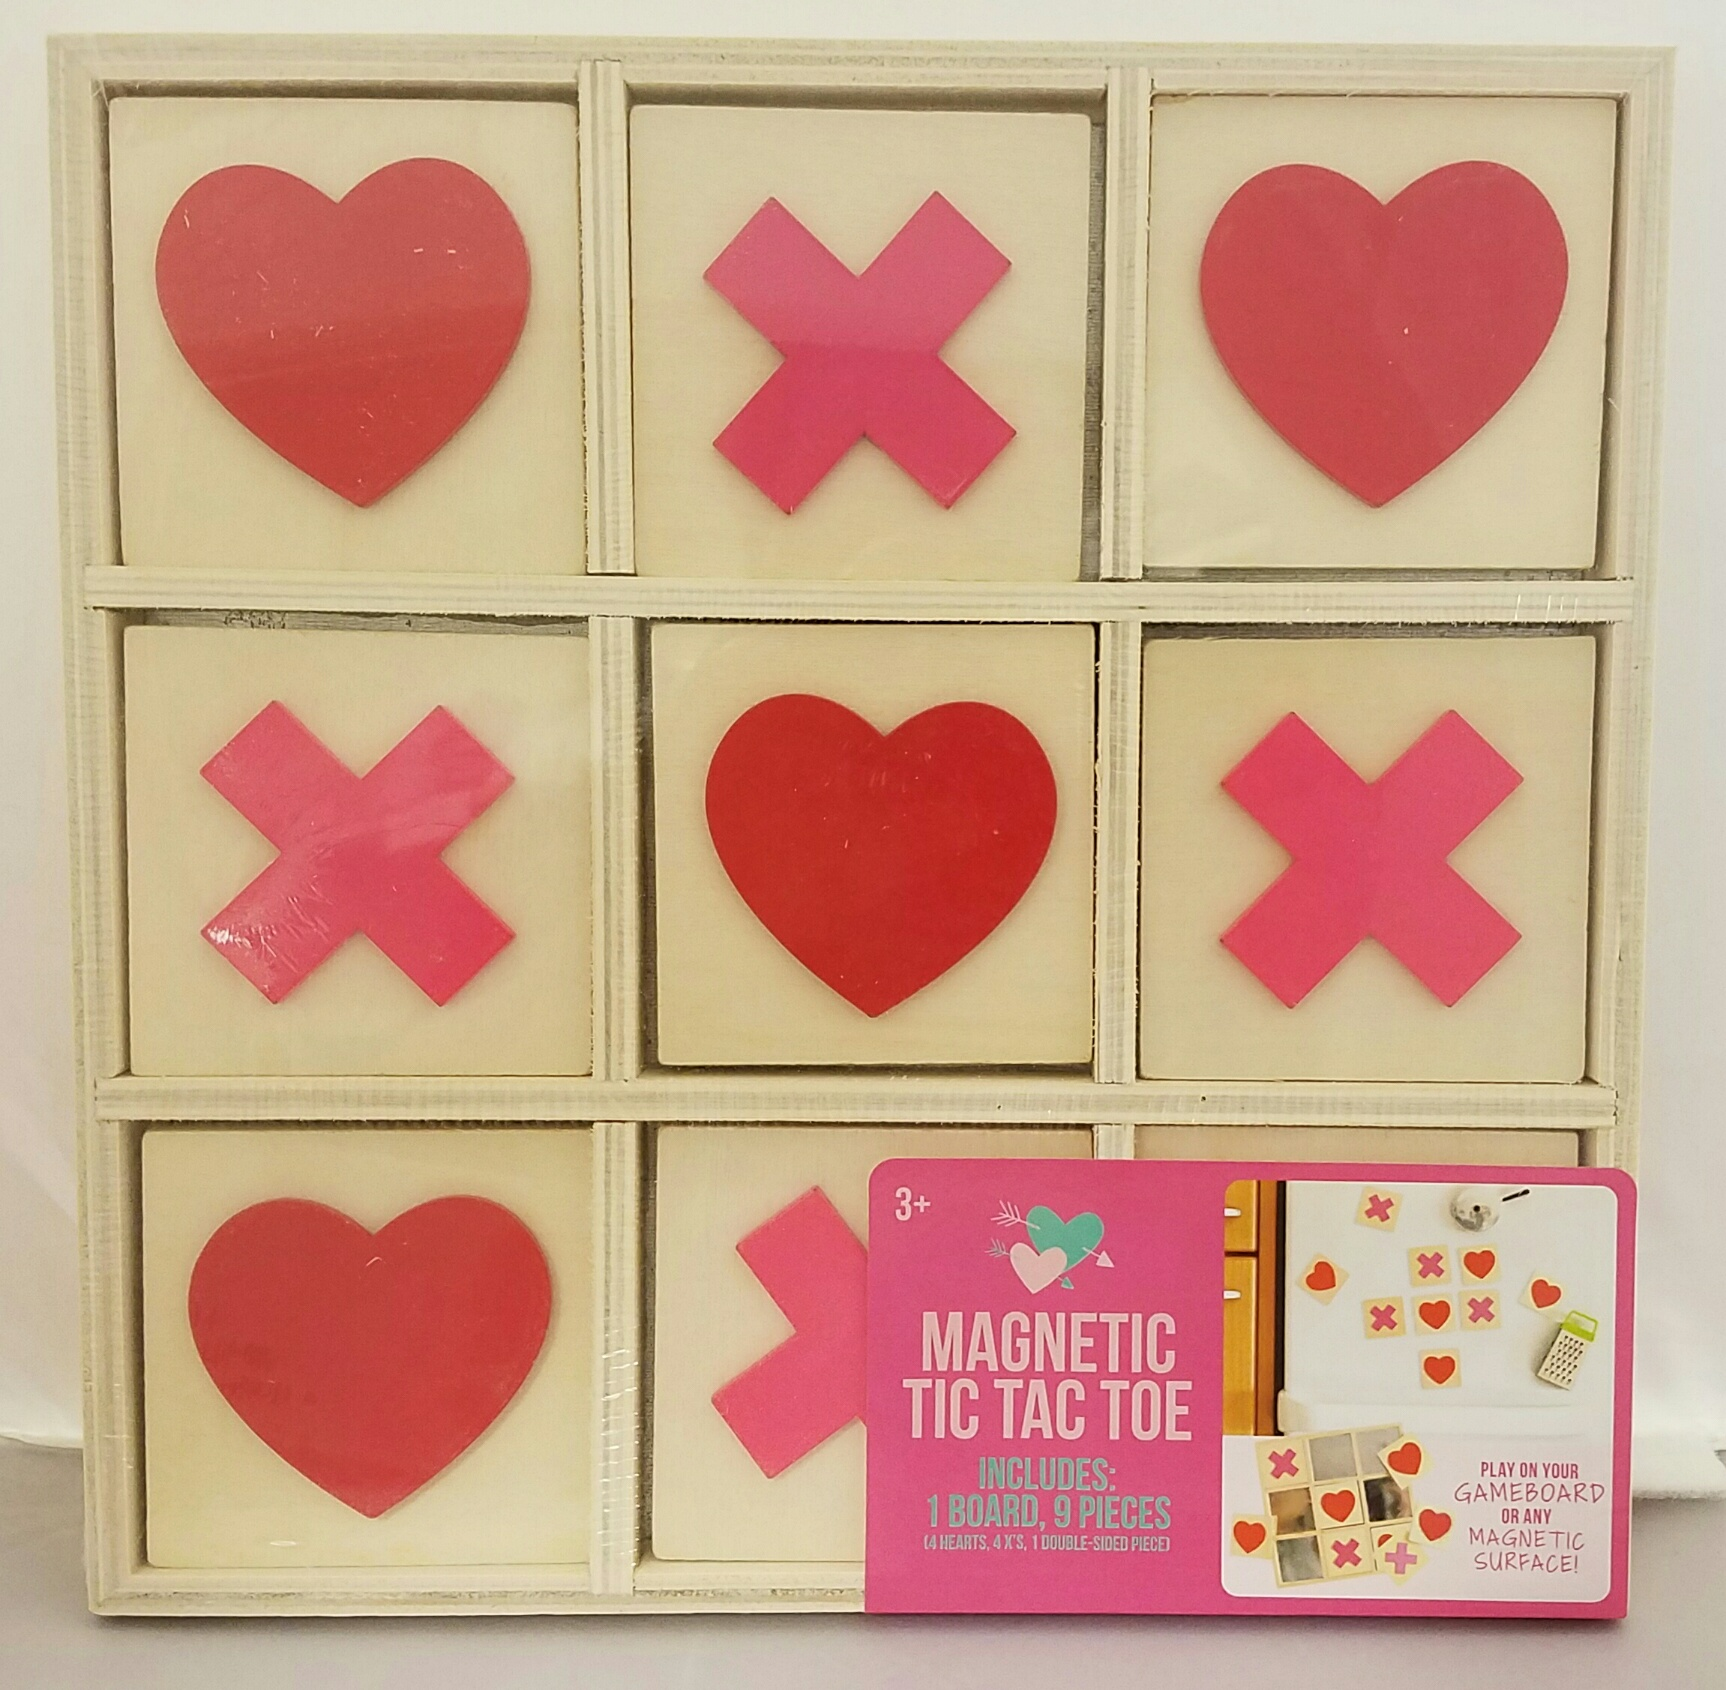 Target Recalls Magnetic Tic Tac Toe Games Due to Choking and Magnet Ingestion Hazards